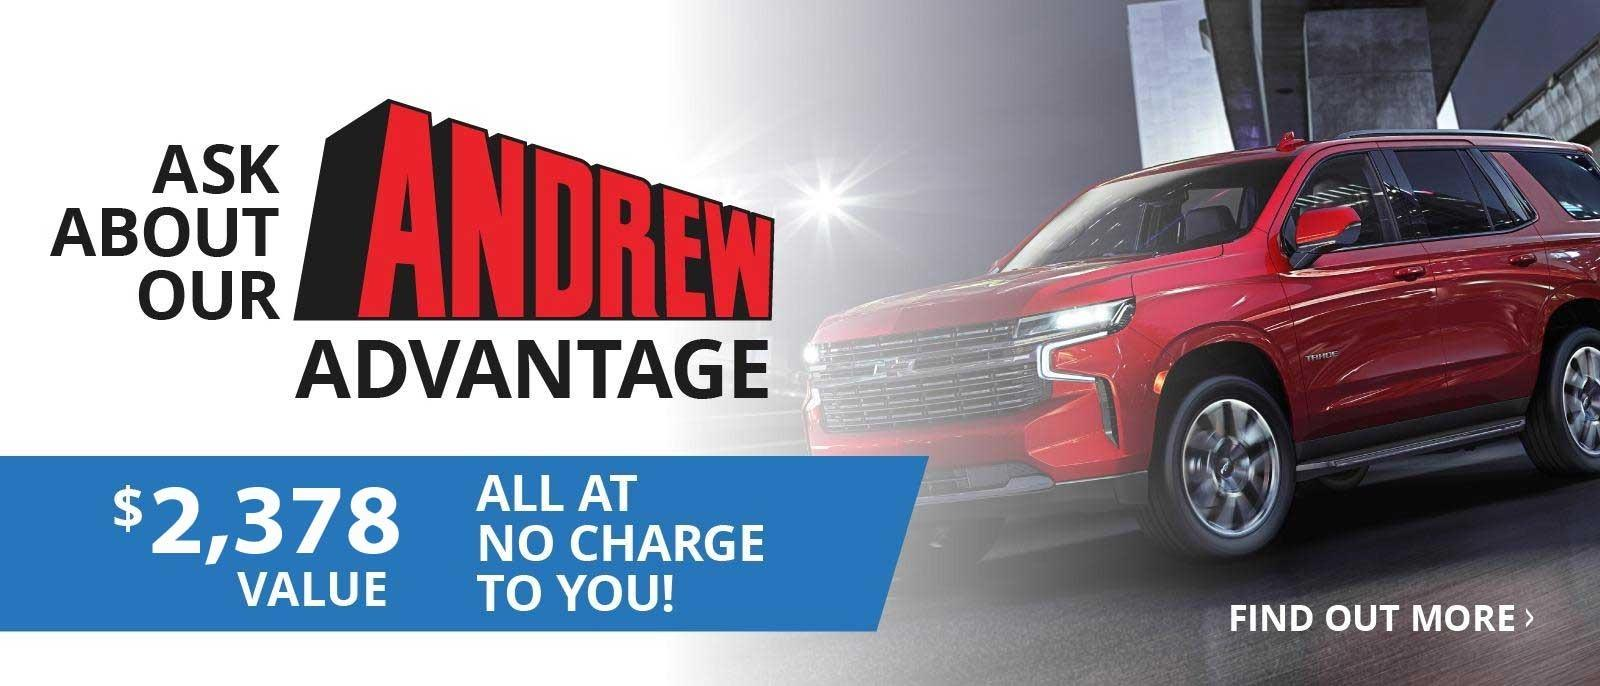 Andrew Chevrolet In Glendale Wi New And Used Chevrolet Dealer